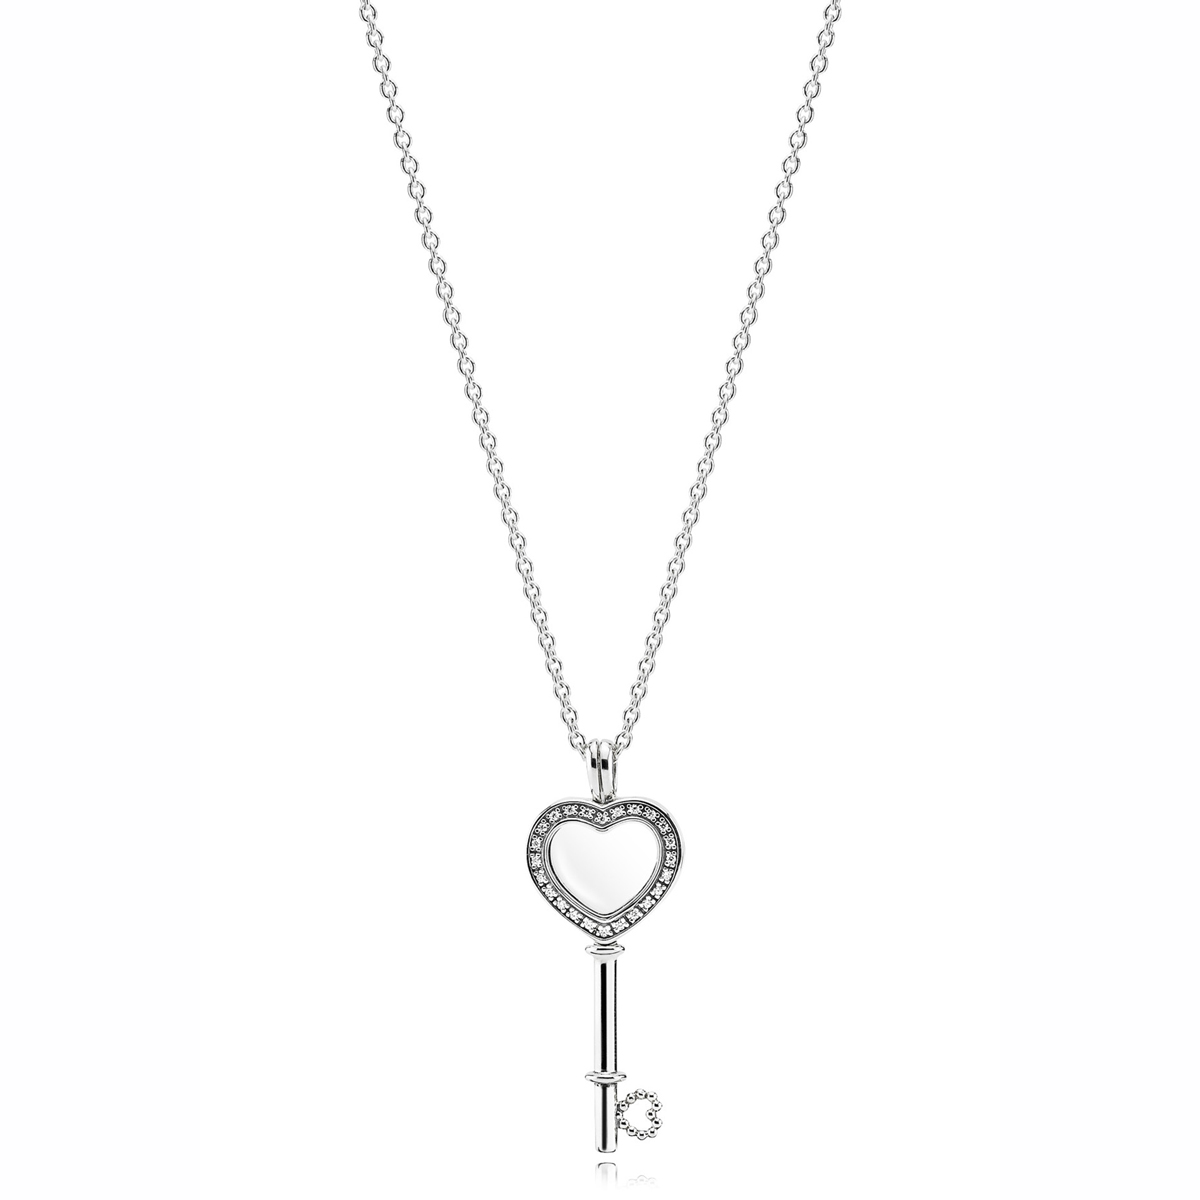 jewelry aur bidermann en mini key silver necklace lie pendant fine